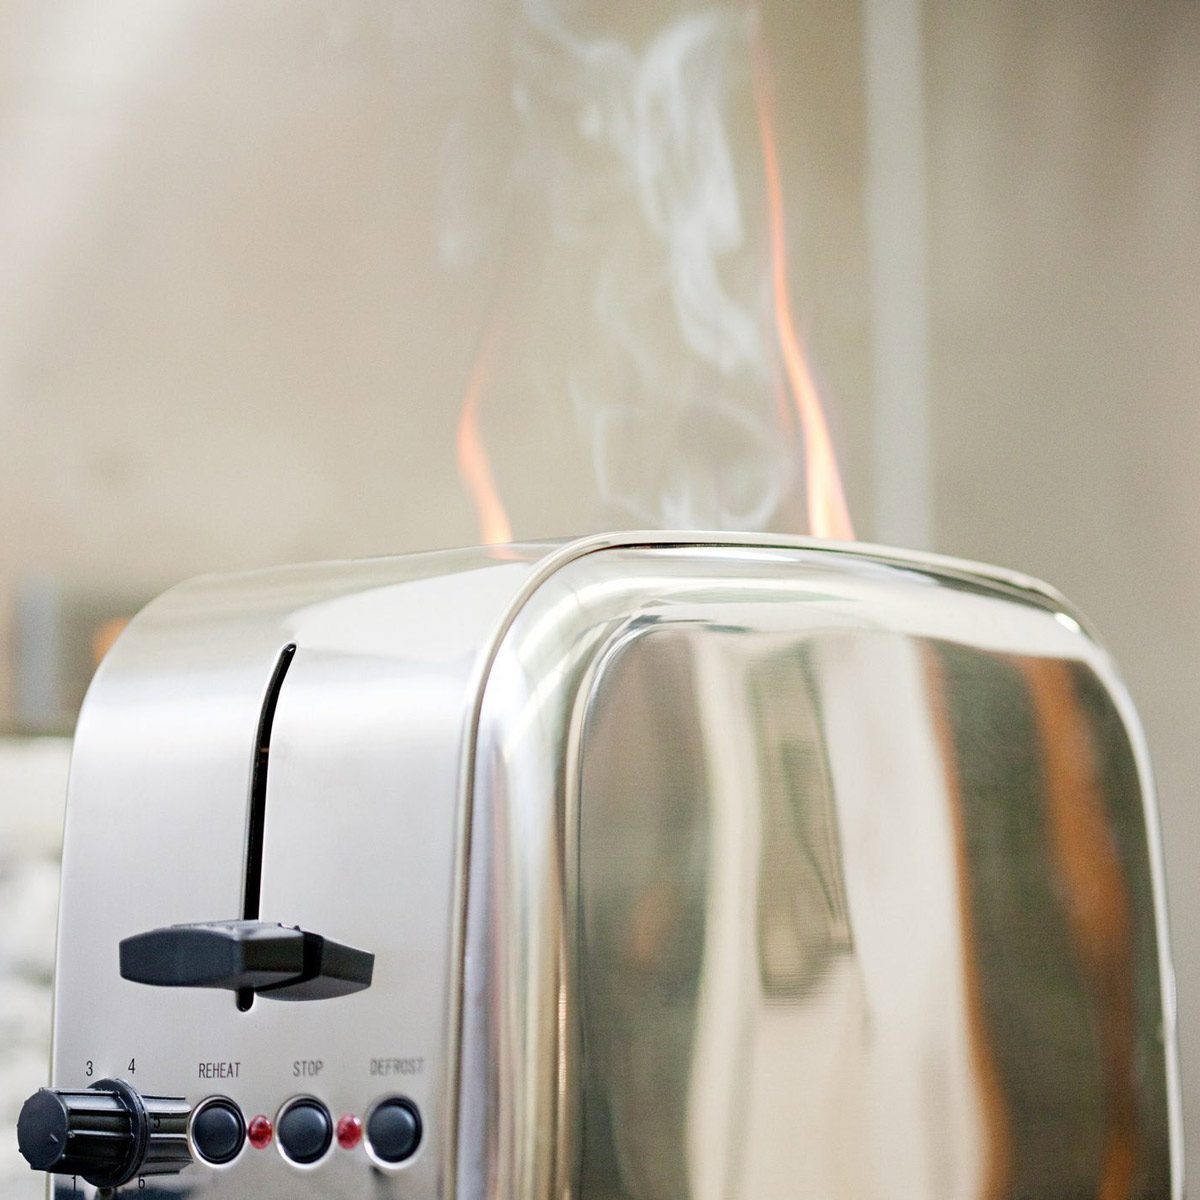 Toaster on fire